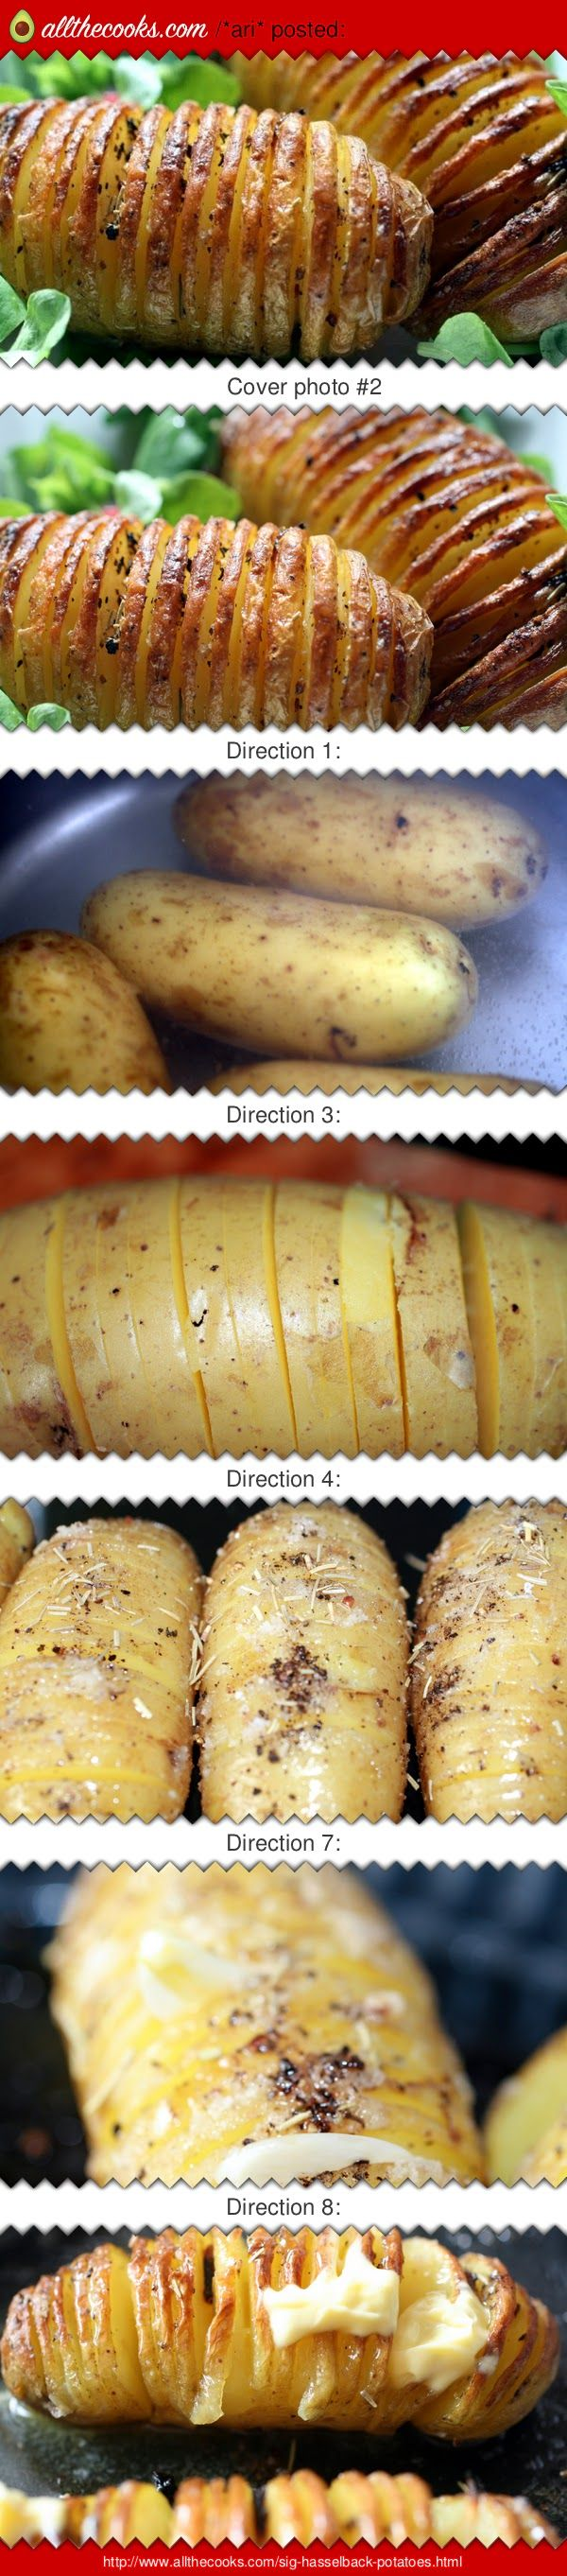 "Sig's++Humbles+(+hasselback+potatoes)!+4.73+stars,+11+reviews.+""This+dish+originates+from+Sweden+,+the+potatoes++are+named+after+the+town+Hasselbaken. I+ate+them+when+visiting+as+a+student.+ If+you+like+roast+,+fried+or+twice+baked+potatoes++you+propably+will+love+them.+ Sweden++has+a+wonderful+cuisine.+ +:hungry+:ohyeaah""+@allthecooks+#recipe+#potatoes+#easy+#potato+#hot+#side"